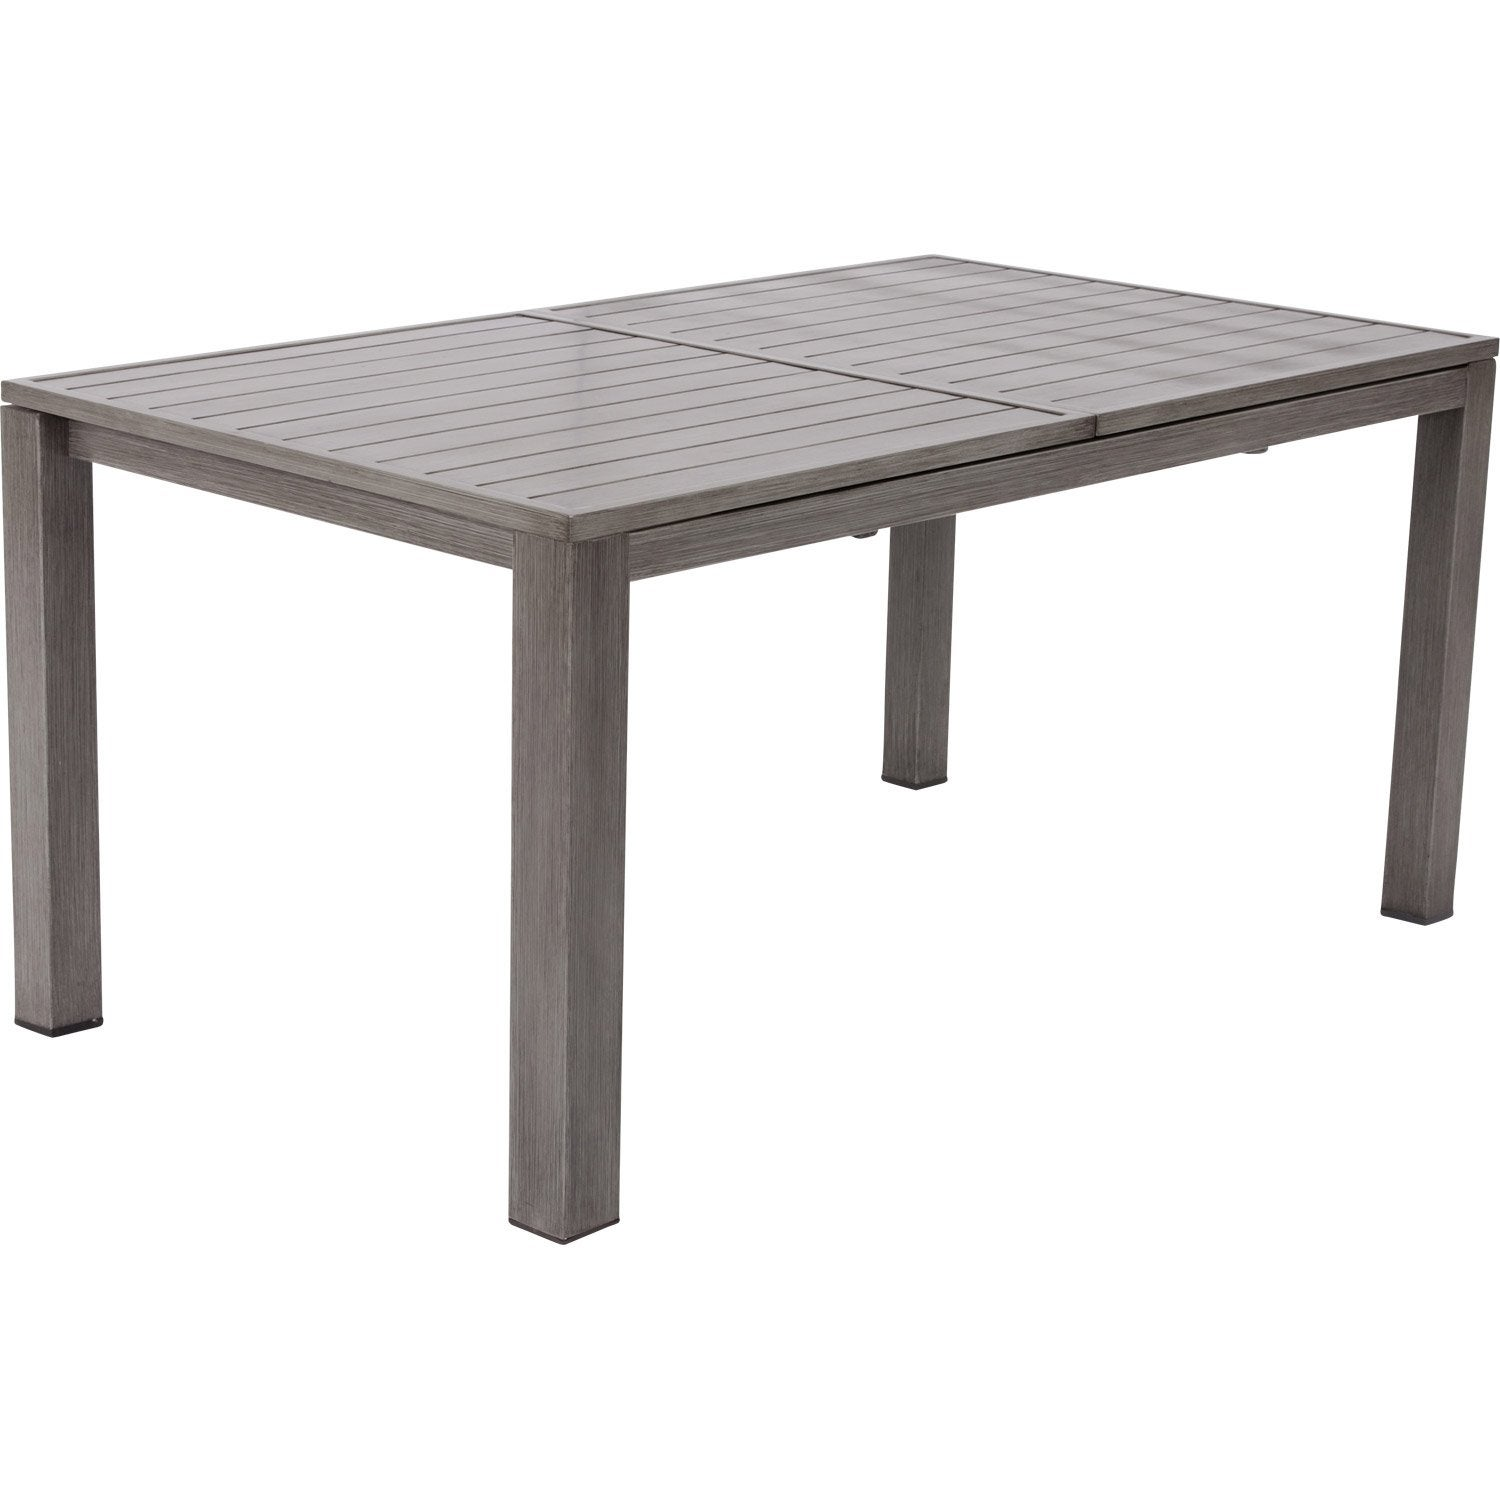 Table de jardin naterial antibes rectangulaire gris look for Table exterieur rallonge aluminium